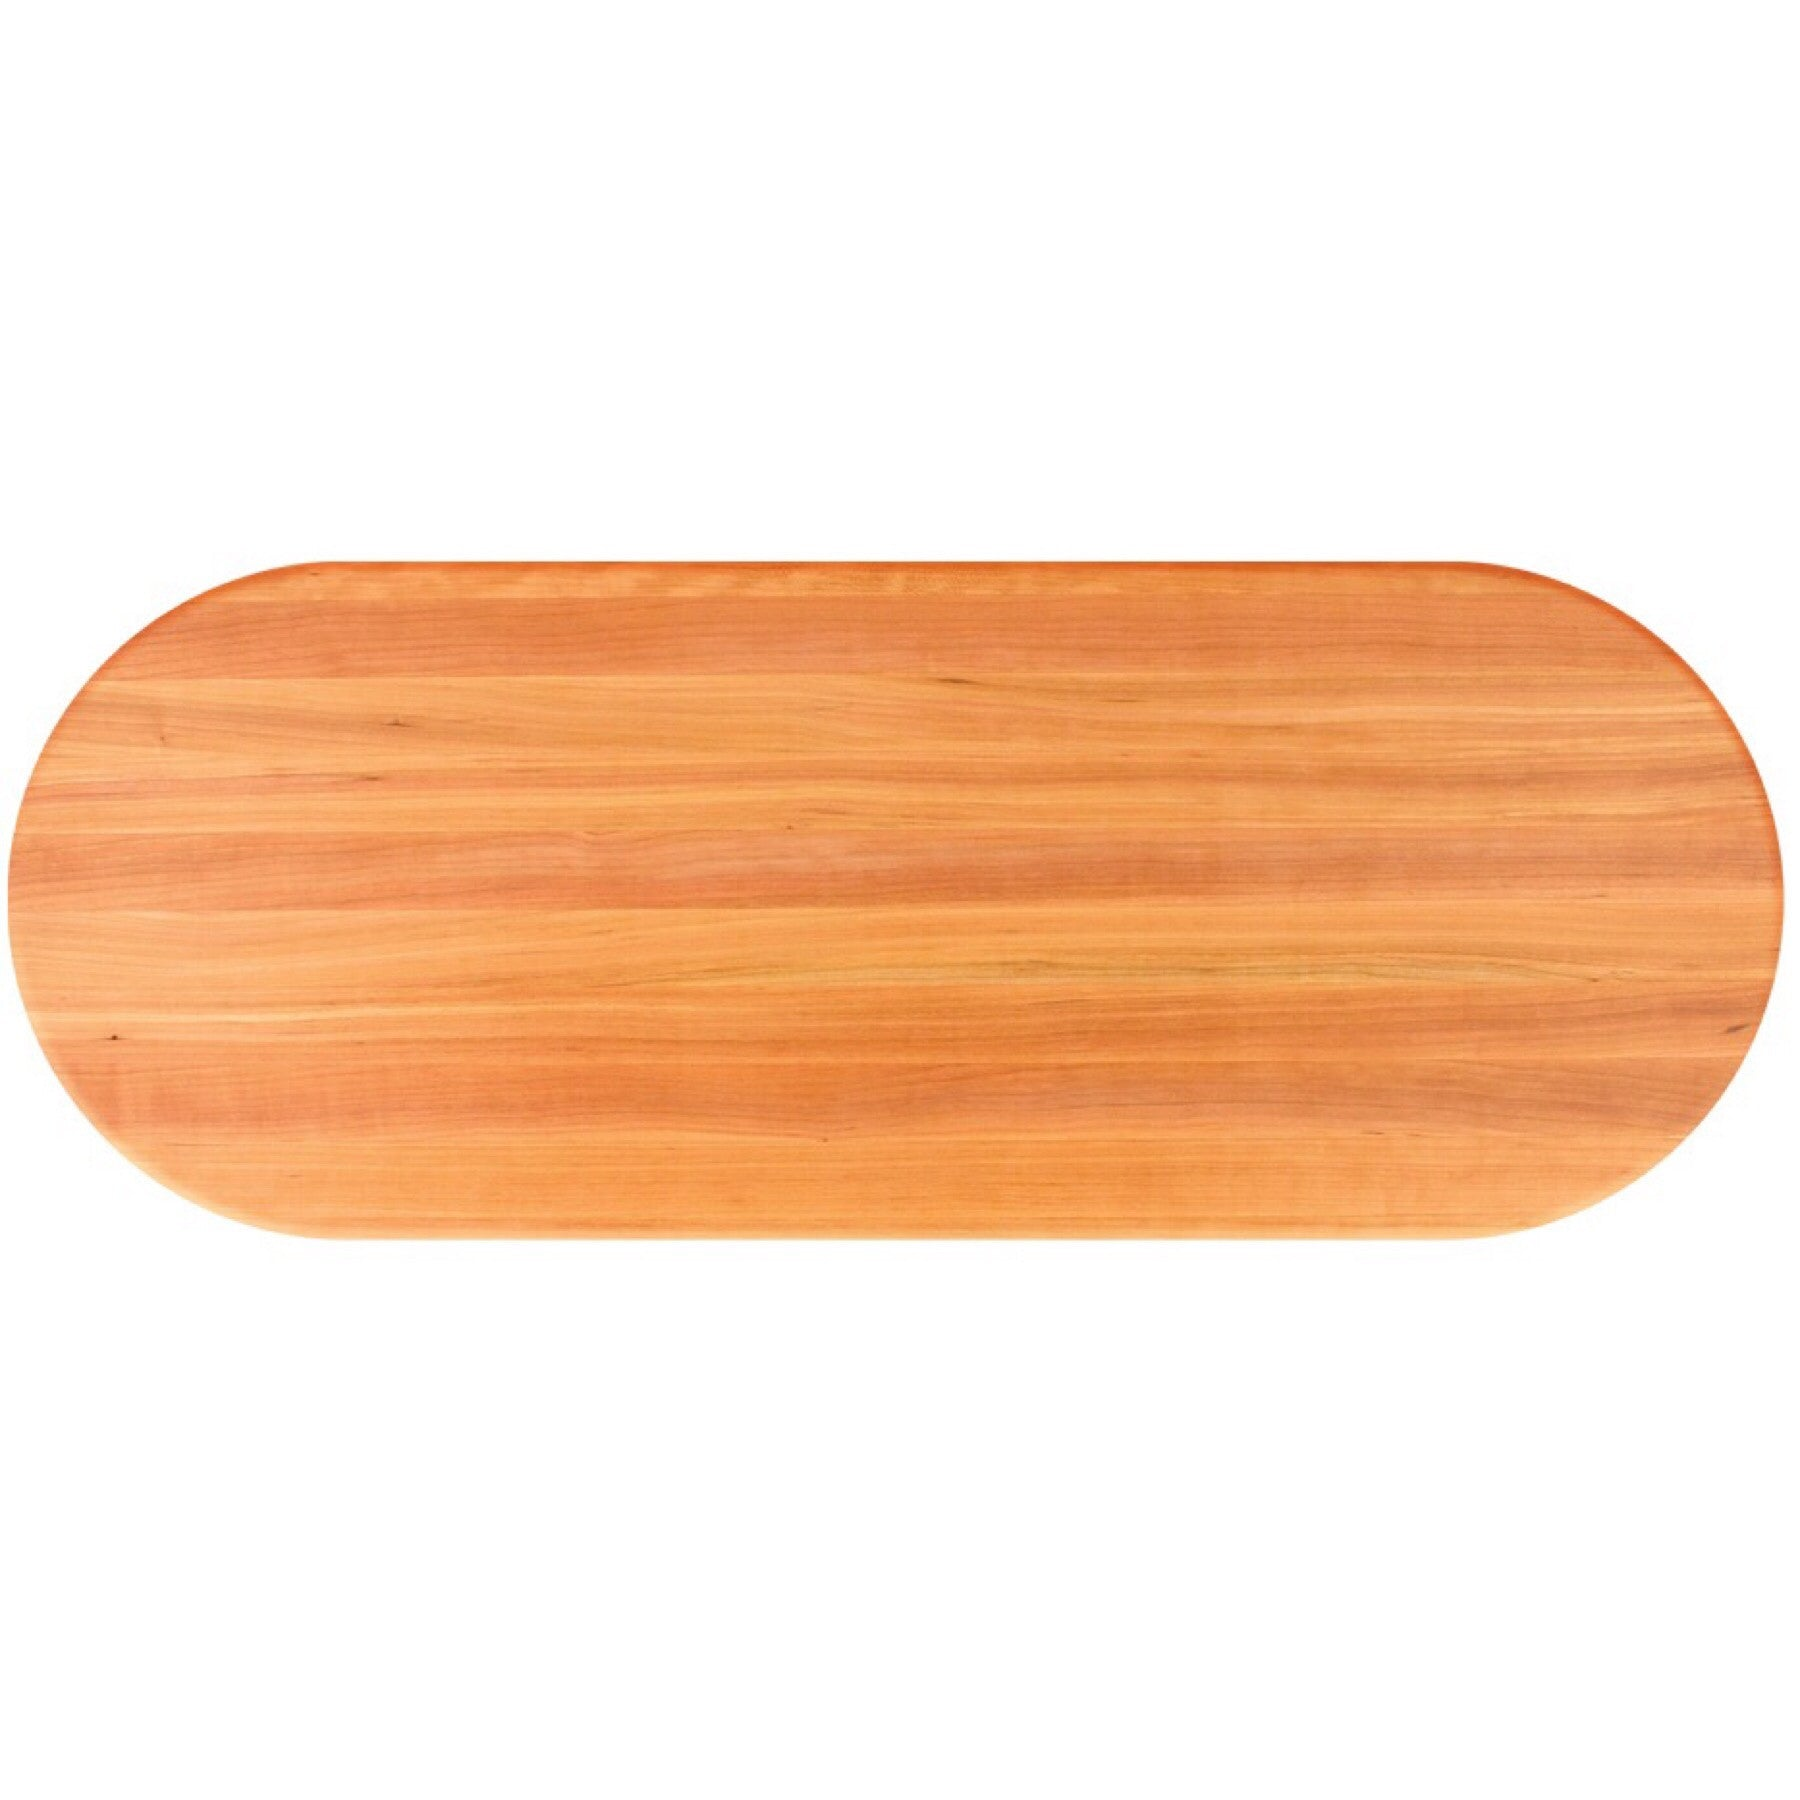 John Boos Oval RTC Cherry Butcher Block Table Top